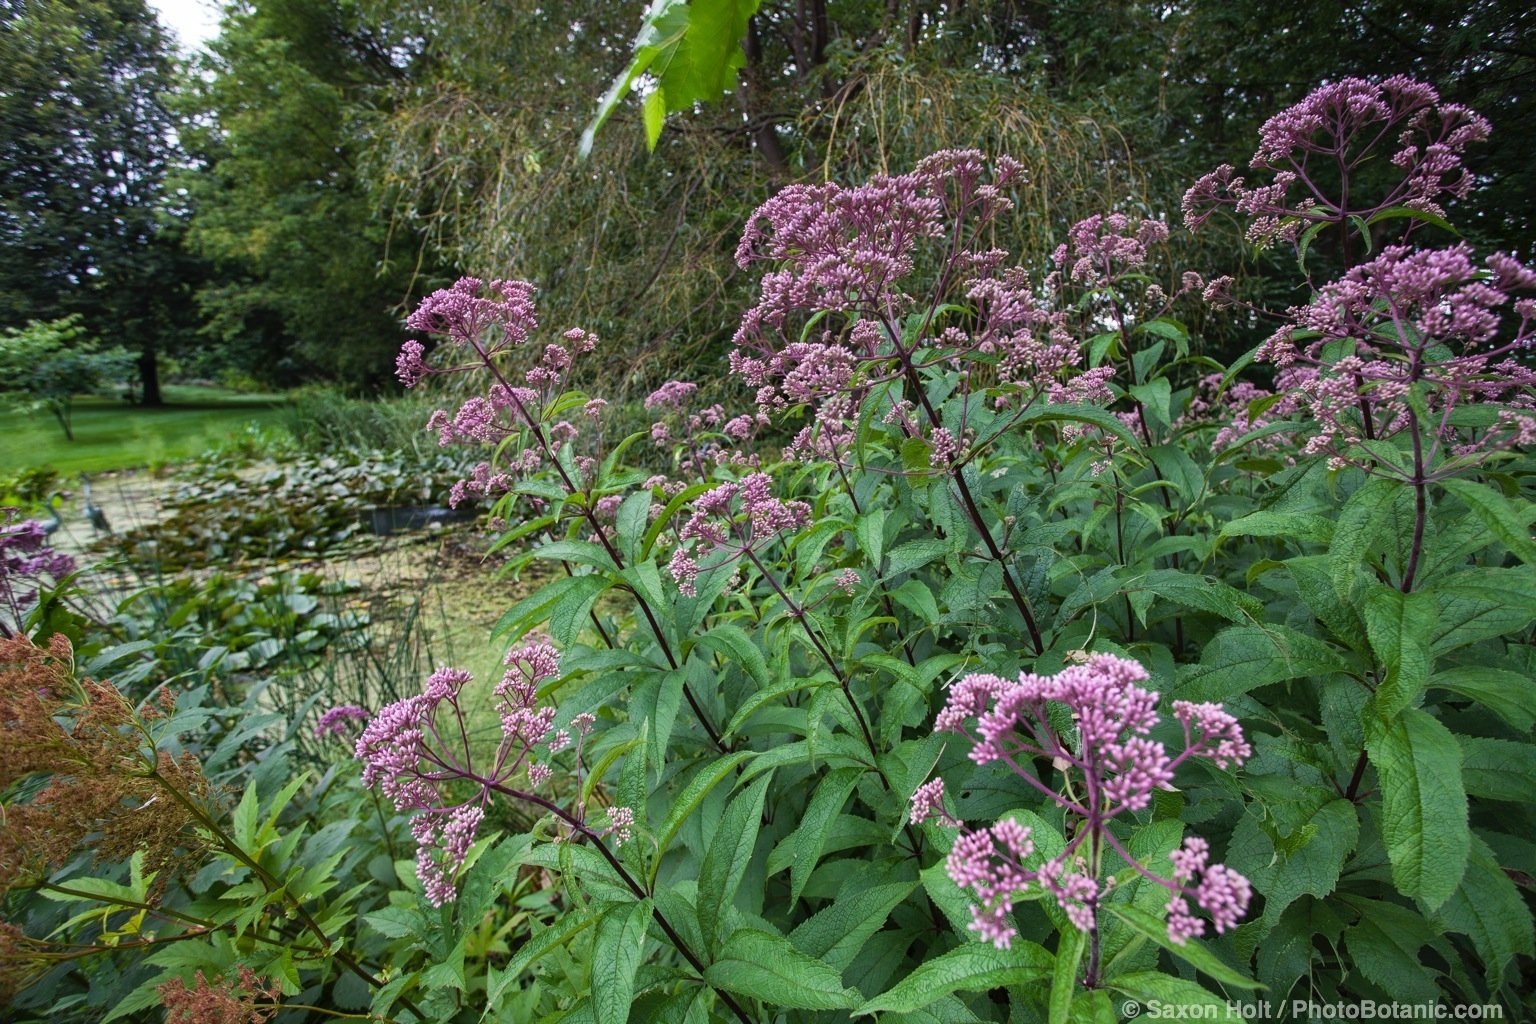 Eutrochium purpureum (aka Eupatorium purpureum), Joe-Pye weed native perennial flowering by bog in Minnesota garden